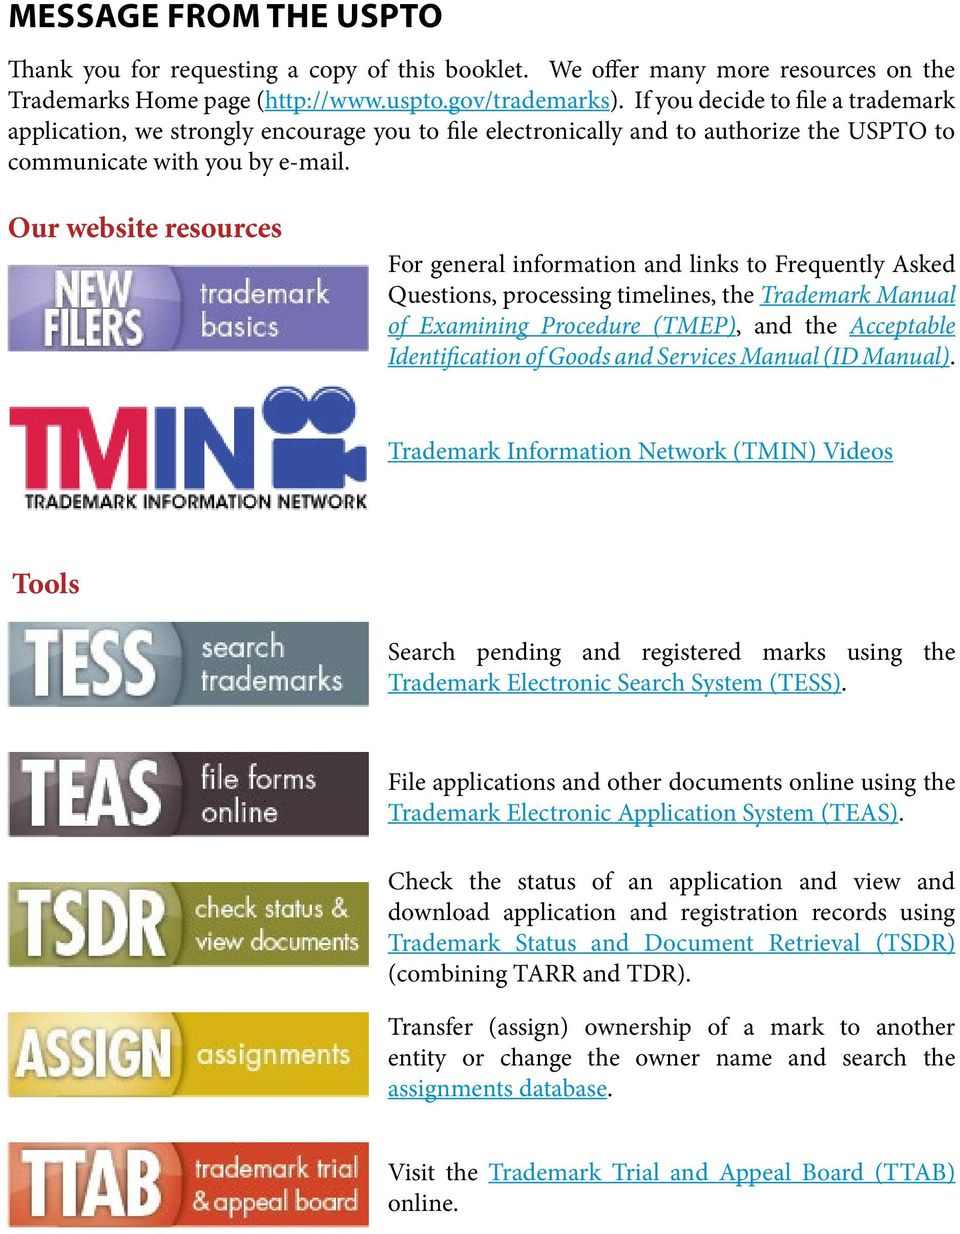 Our website resources For general information and links to Frequently Asked Questions, processing timelines, the Trademark Manual of Examining Procedure (TMEP), and the Acceptable Identification of